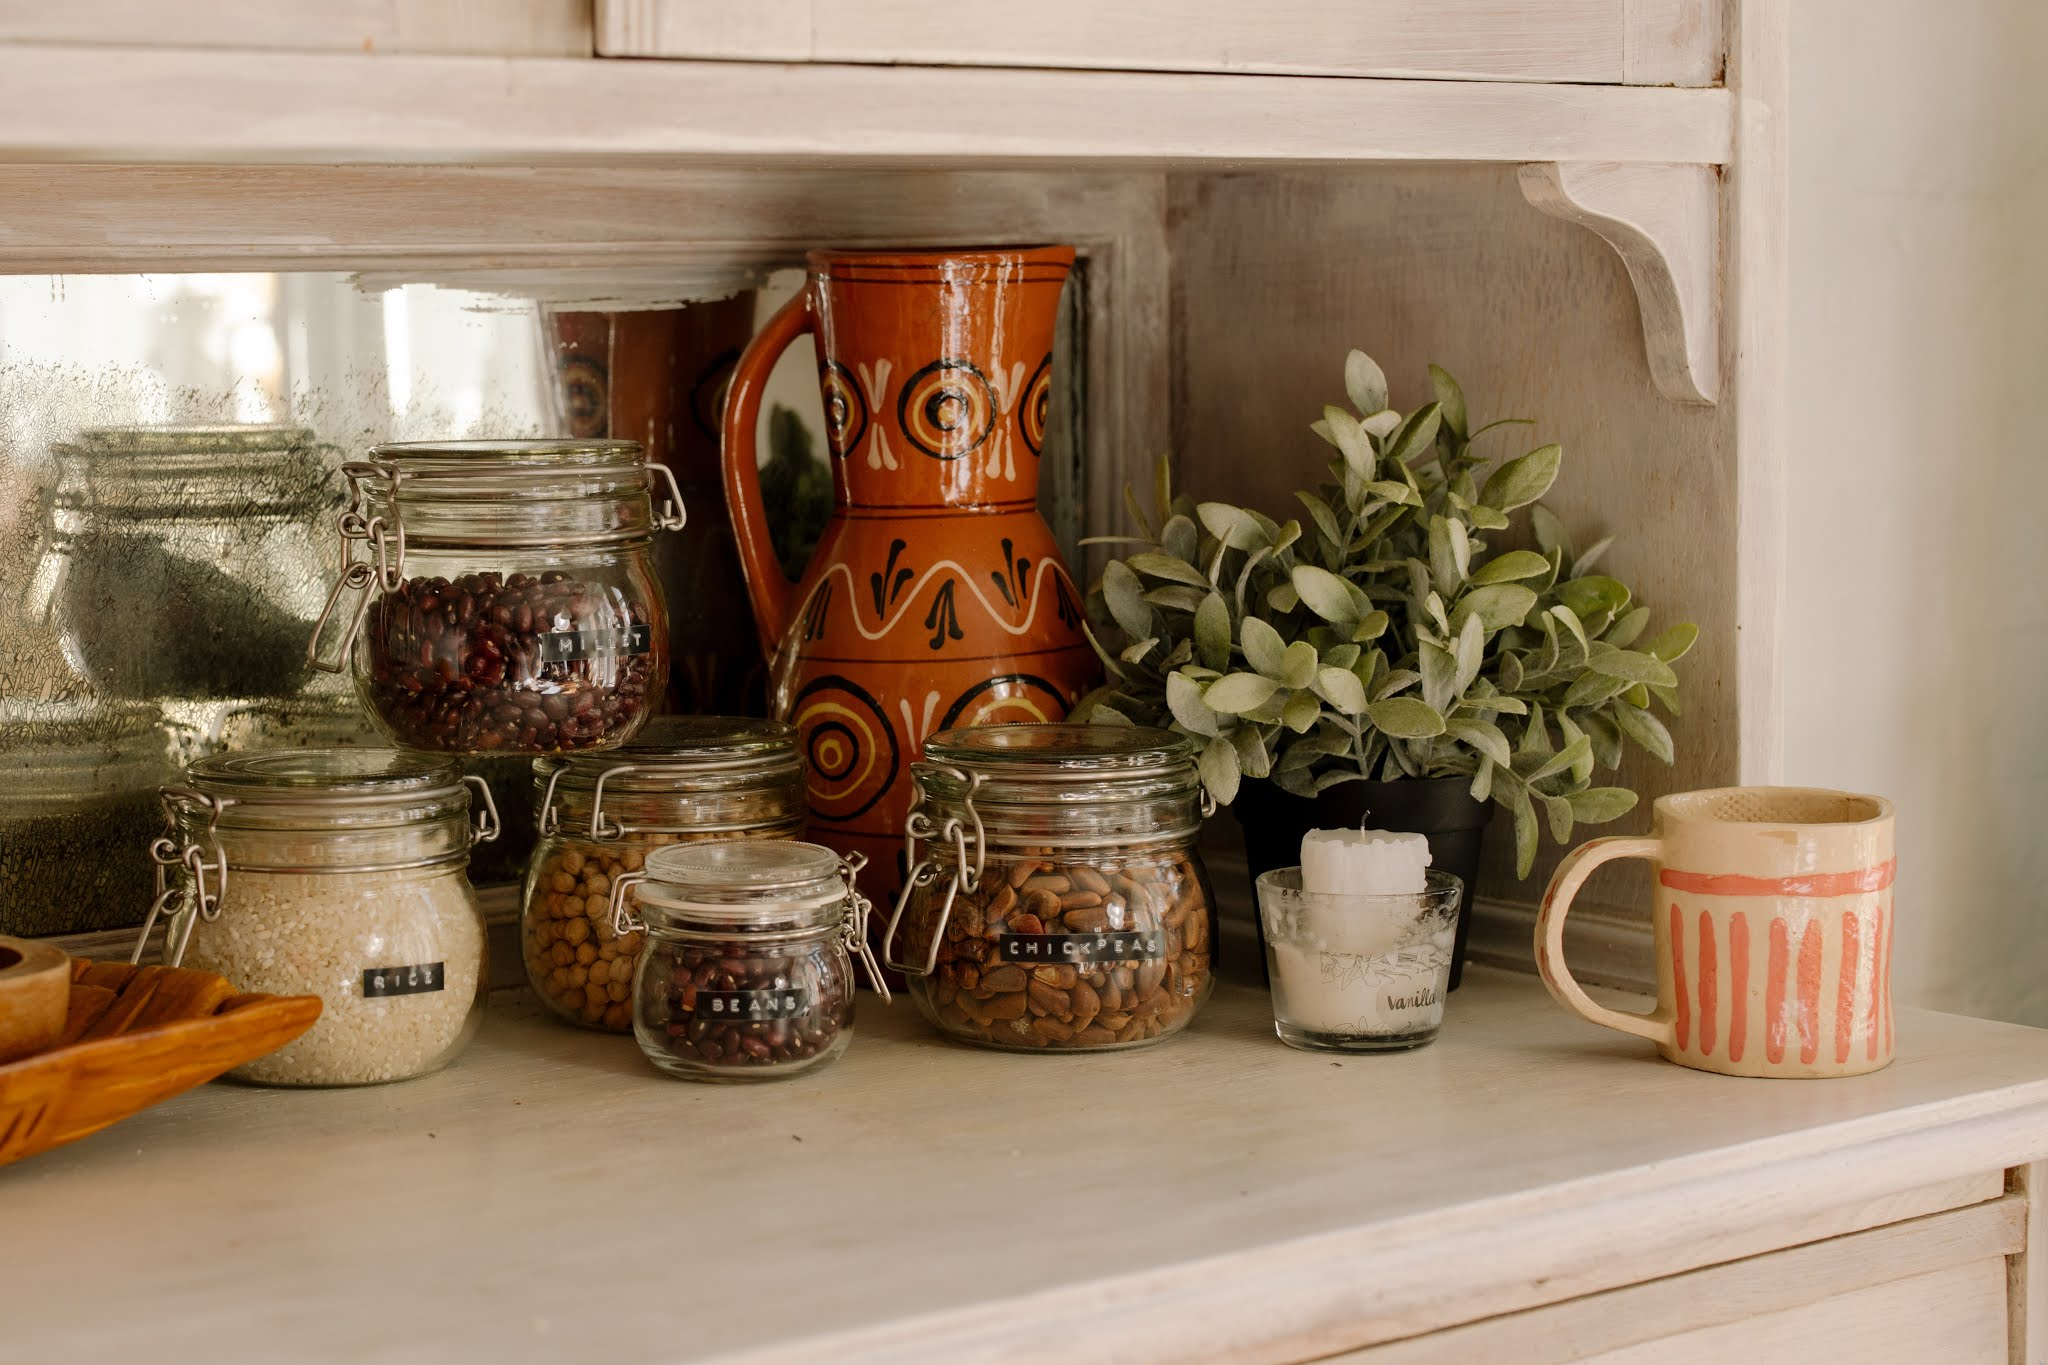 Brown Ceramic Vases on White Table by CottonBro free stock image on Pexel